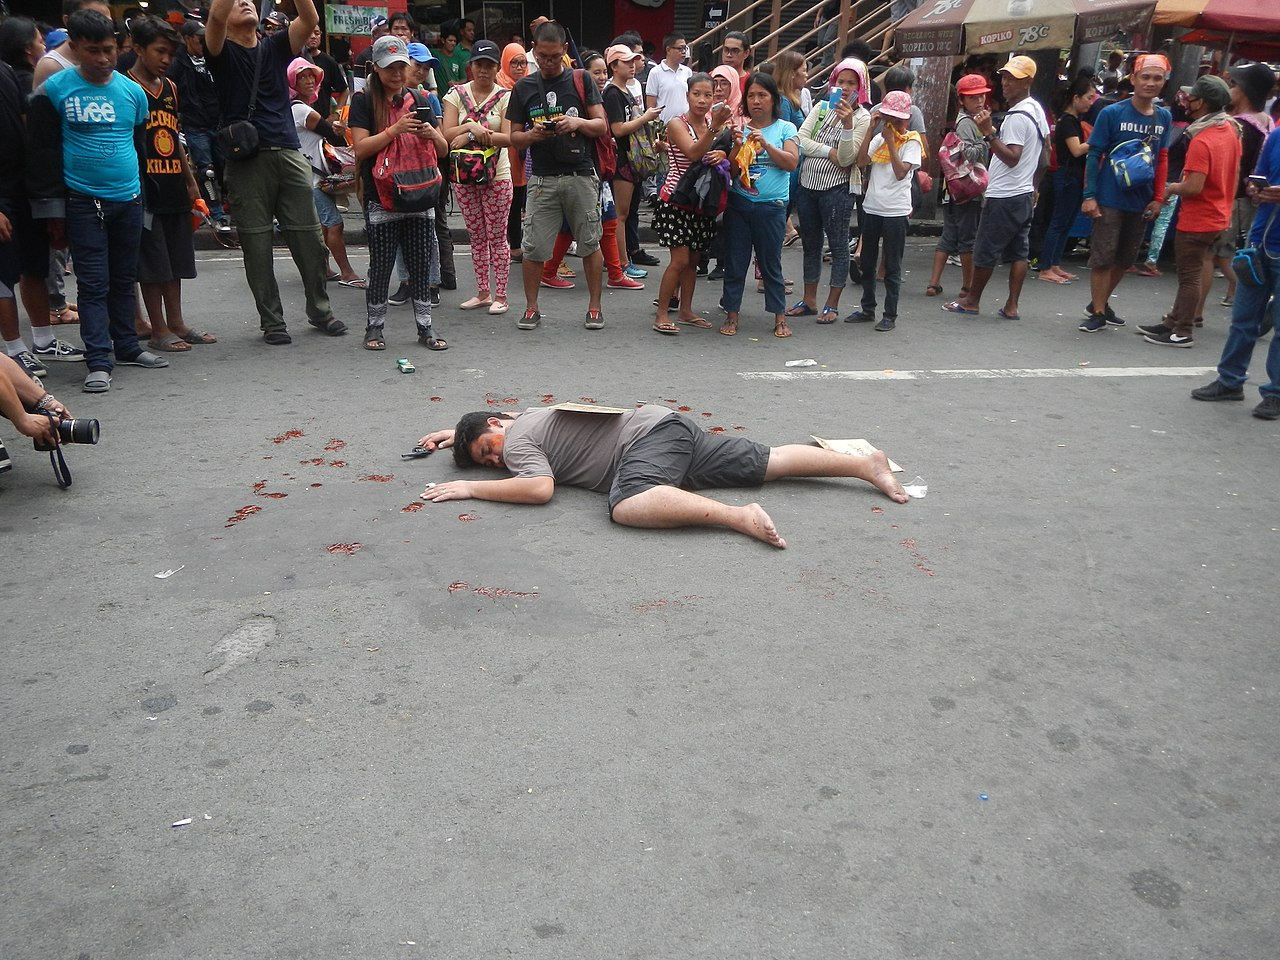 Demonstrator reenacts what the (alleged) extrajudicial killing looked like. Writing on the cardboard placed on the body was typically used in the crime allegedly related to drugs since Rodrigo Duterte was inaugurated as the president.